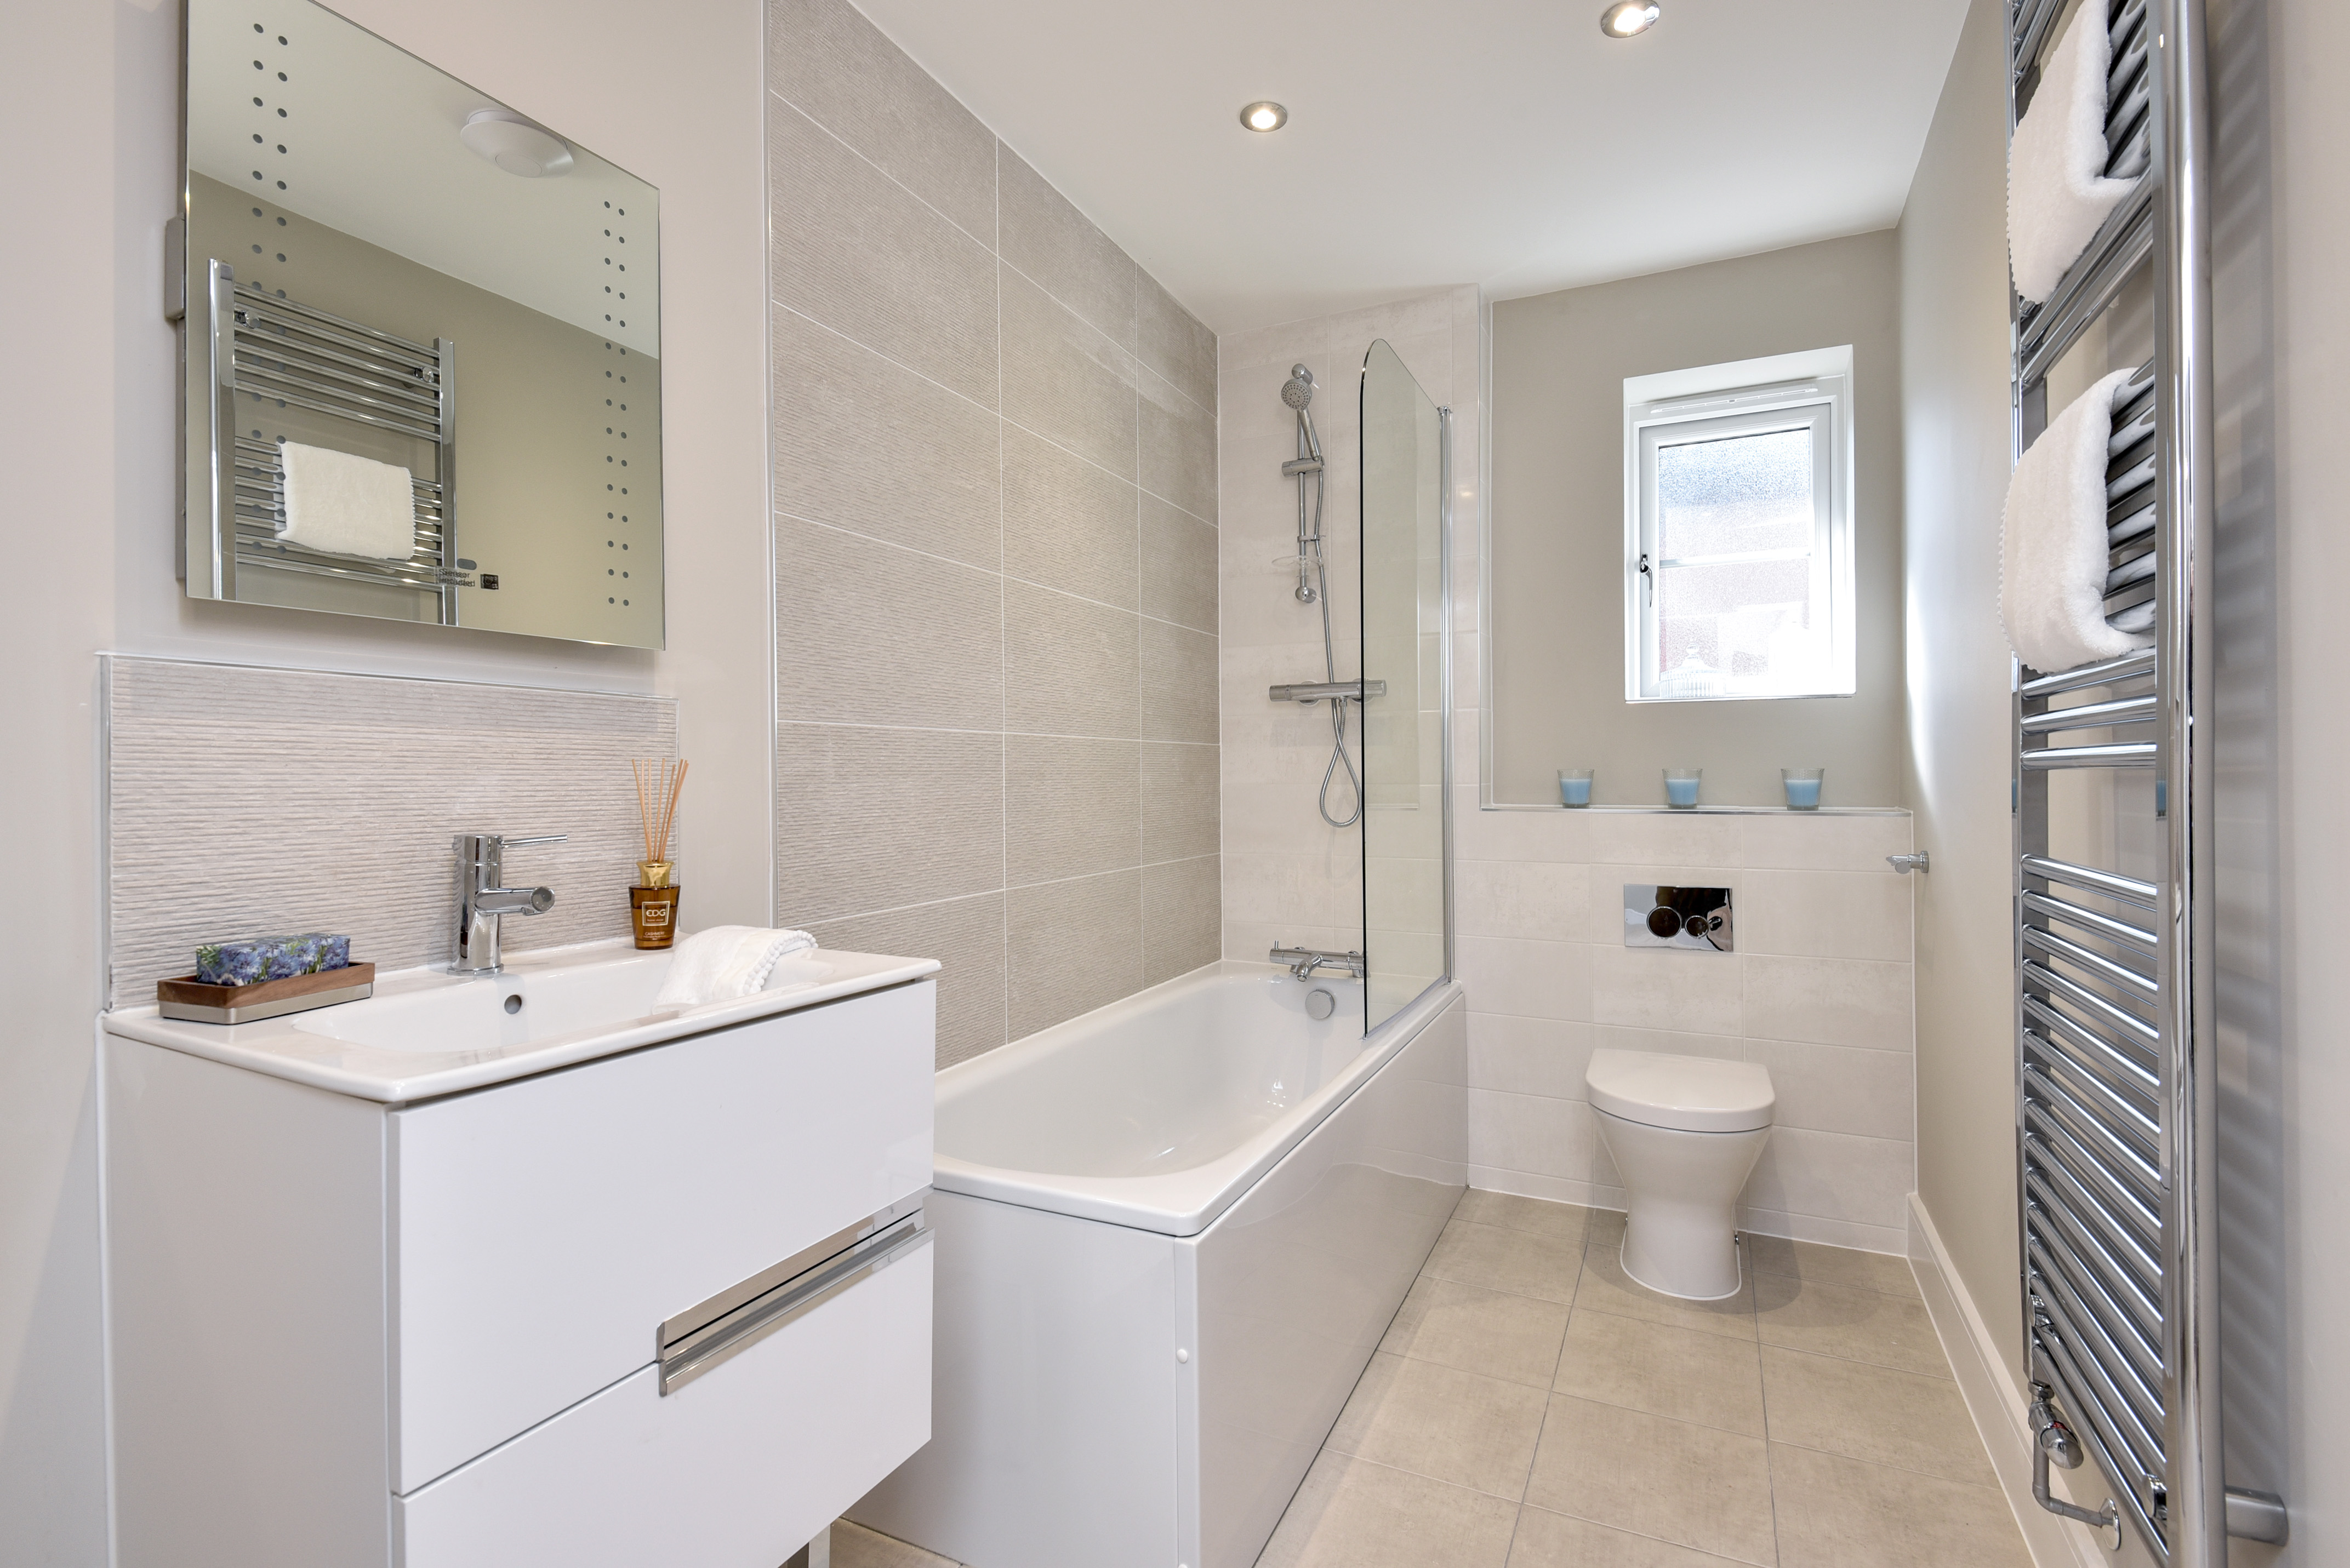 Home Co Uk Professional Floor 4 Bed House For Sale In Hay On Wye Clyro Hr3 184pexx1 Quest